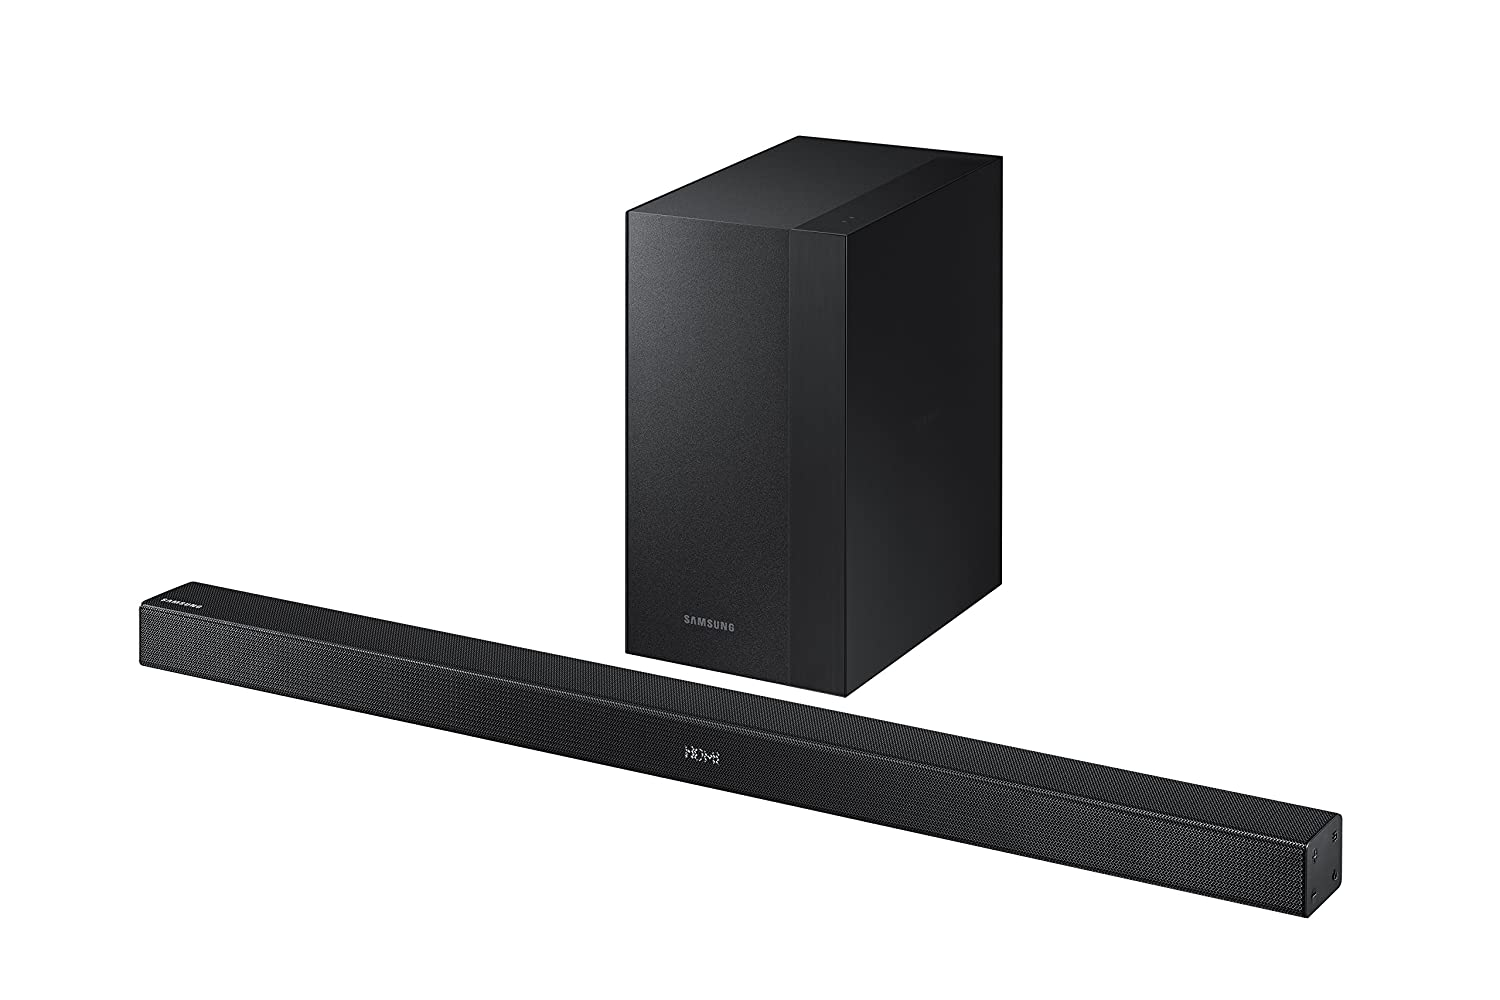 92f0b9369ac Amazon.com  Samsung HW-K450 2.1 Channel 300 Watt Wireless Audio Soundbar  (2016 Model)  Home Audio   Theater